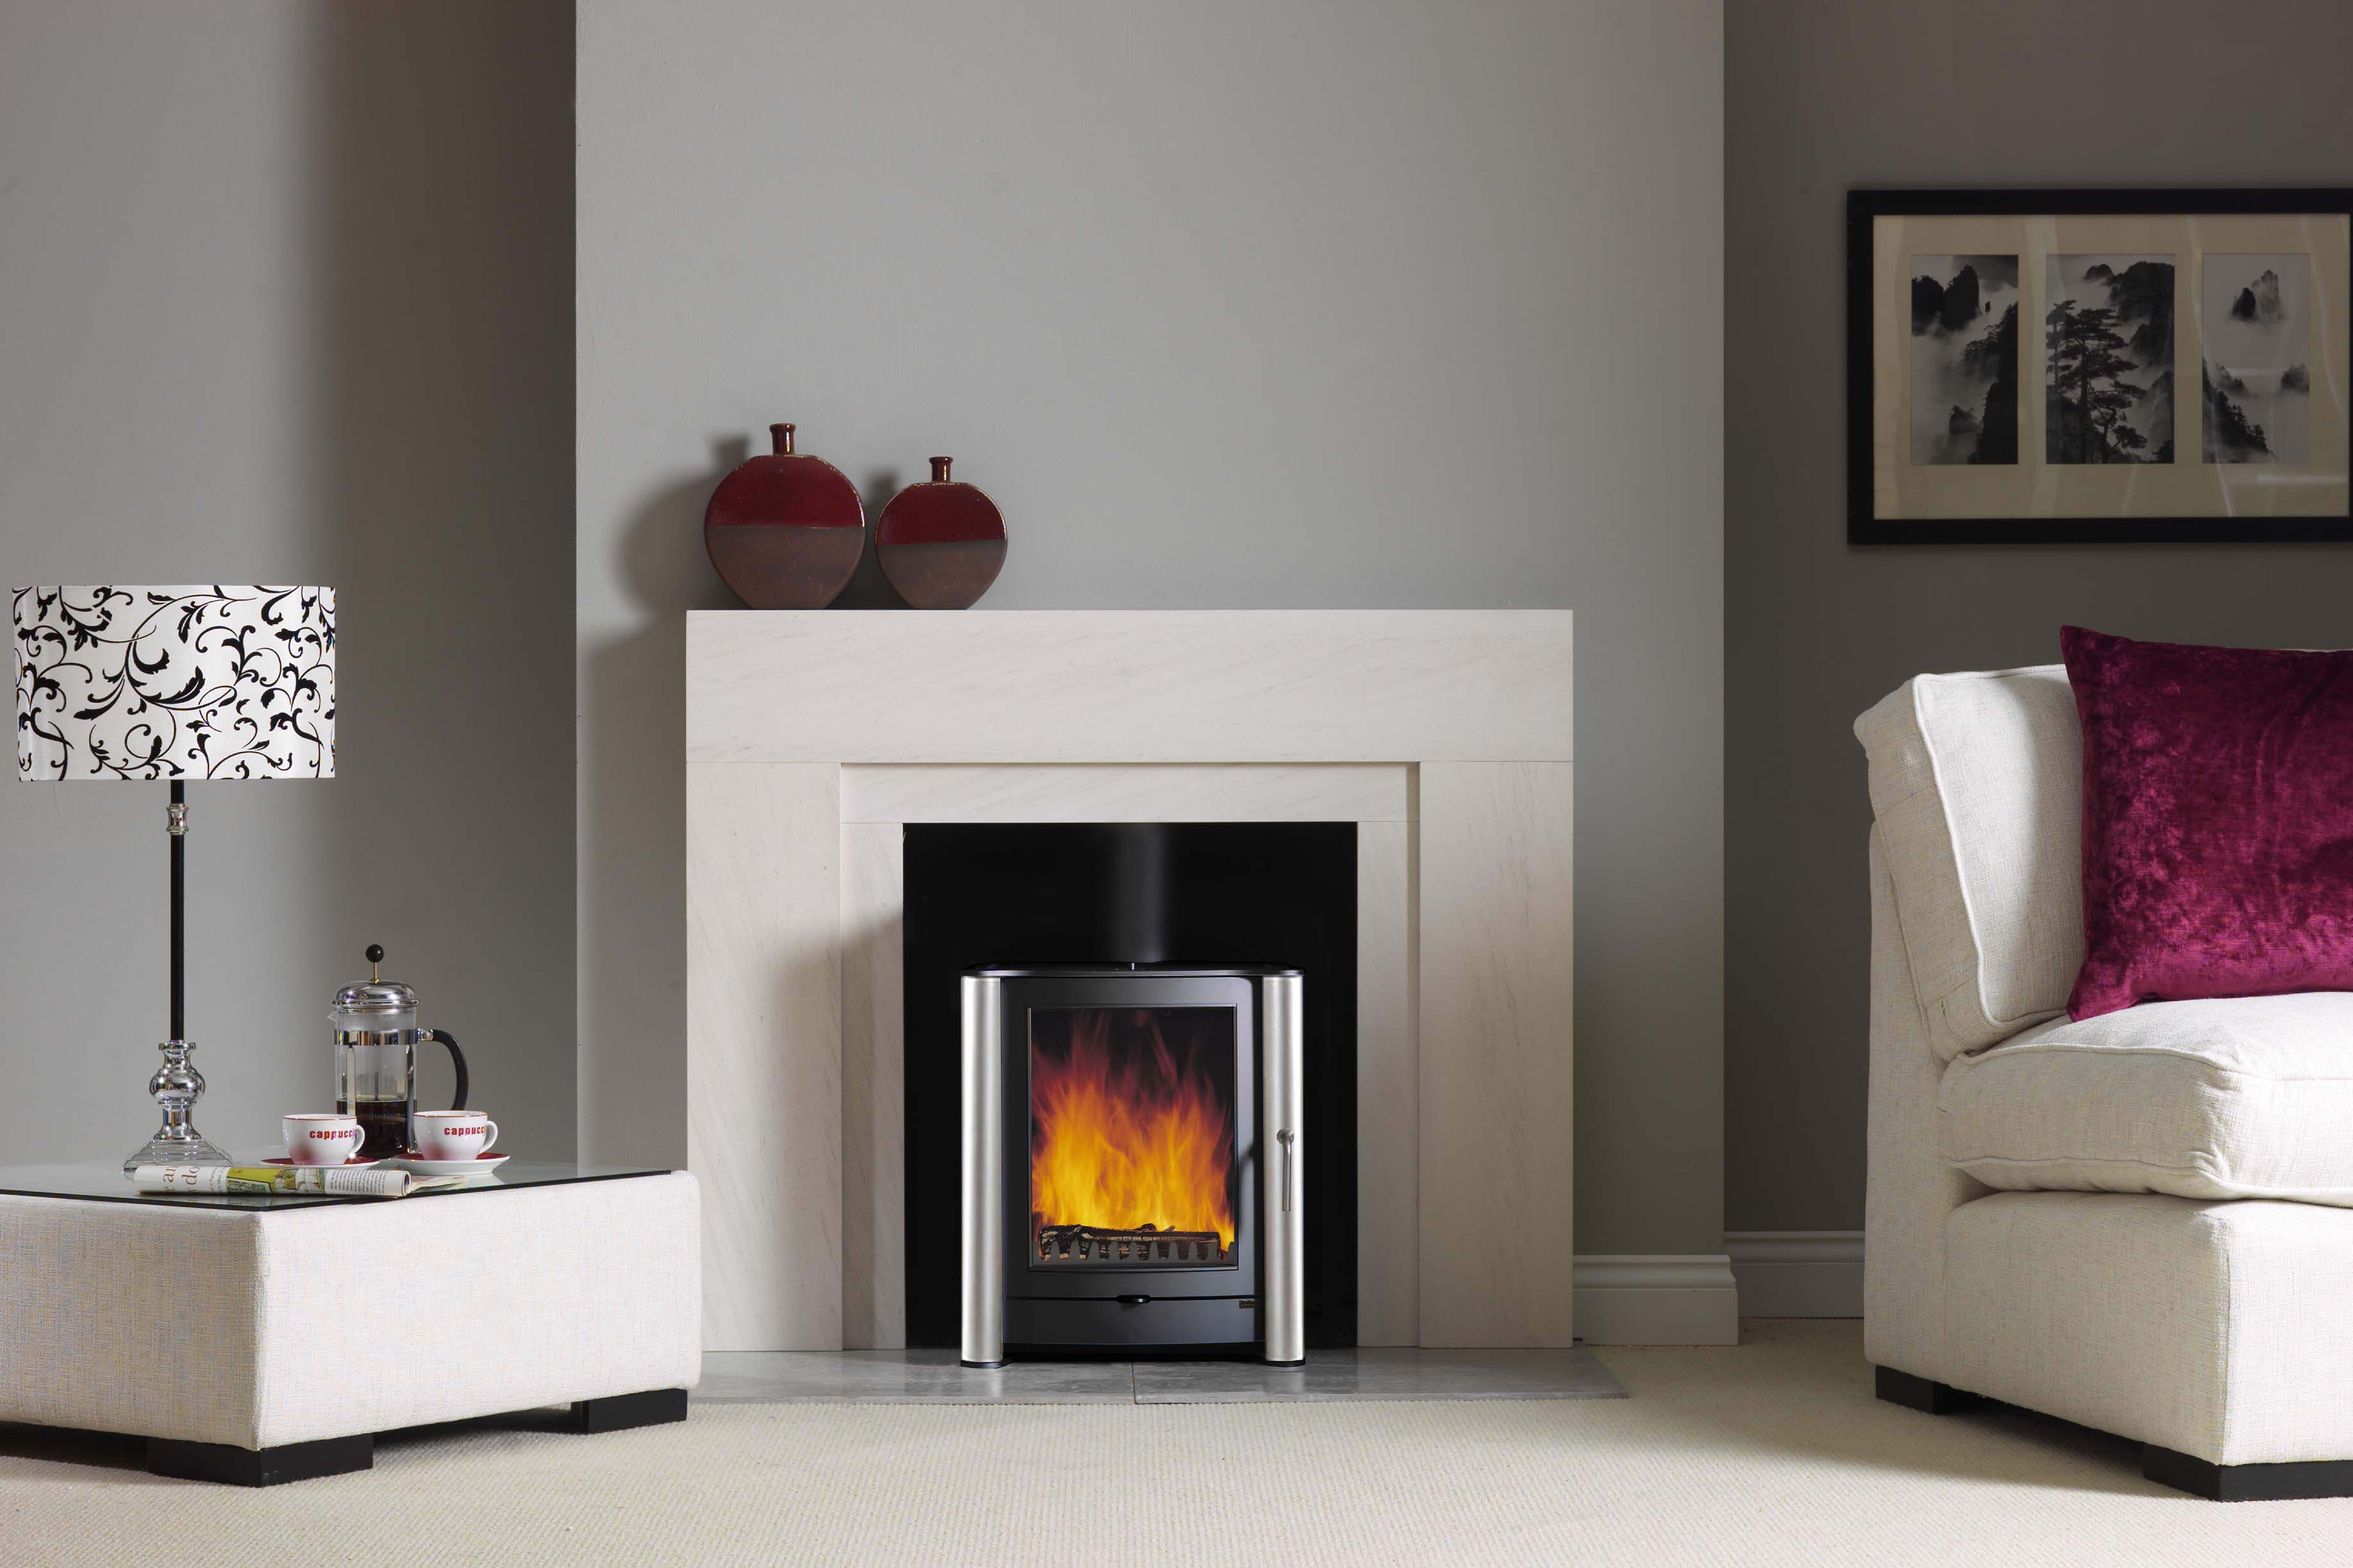 Firebelly Fb1 Wood Burning Stove With Brushed Stainless